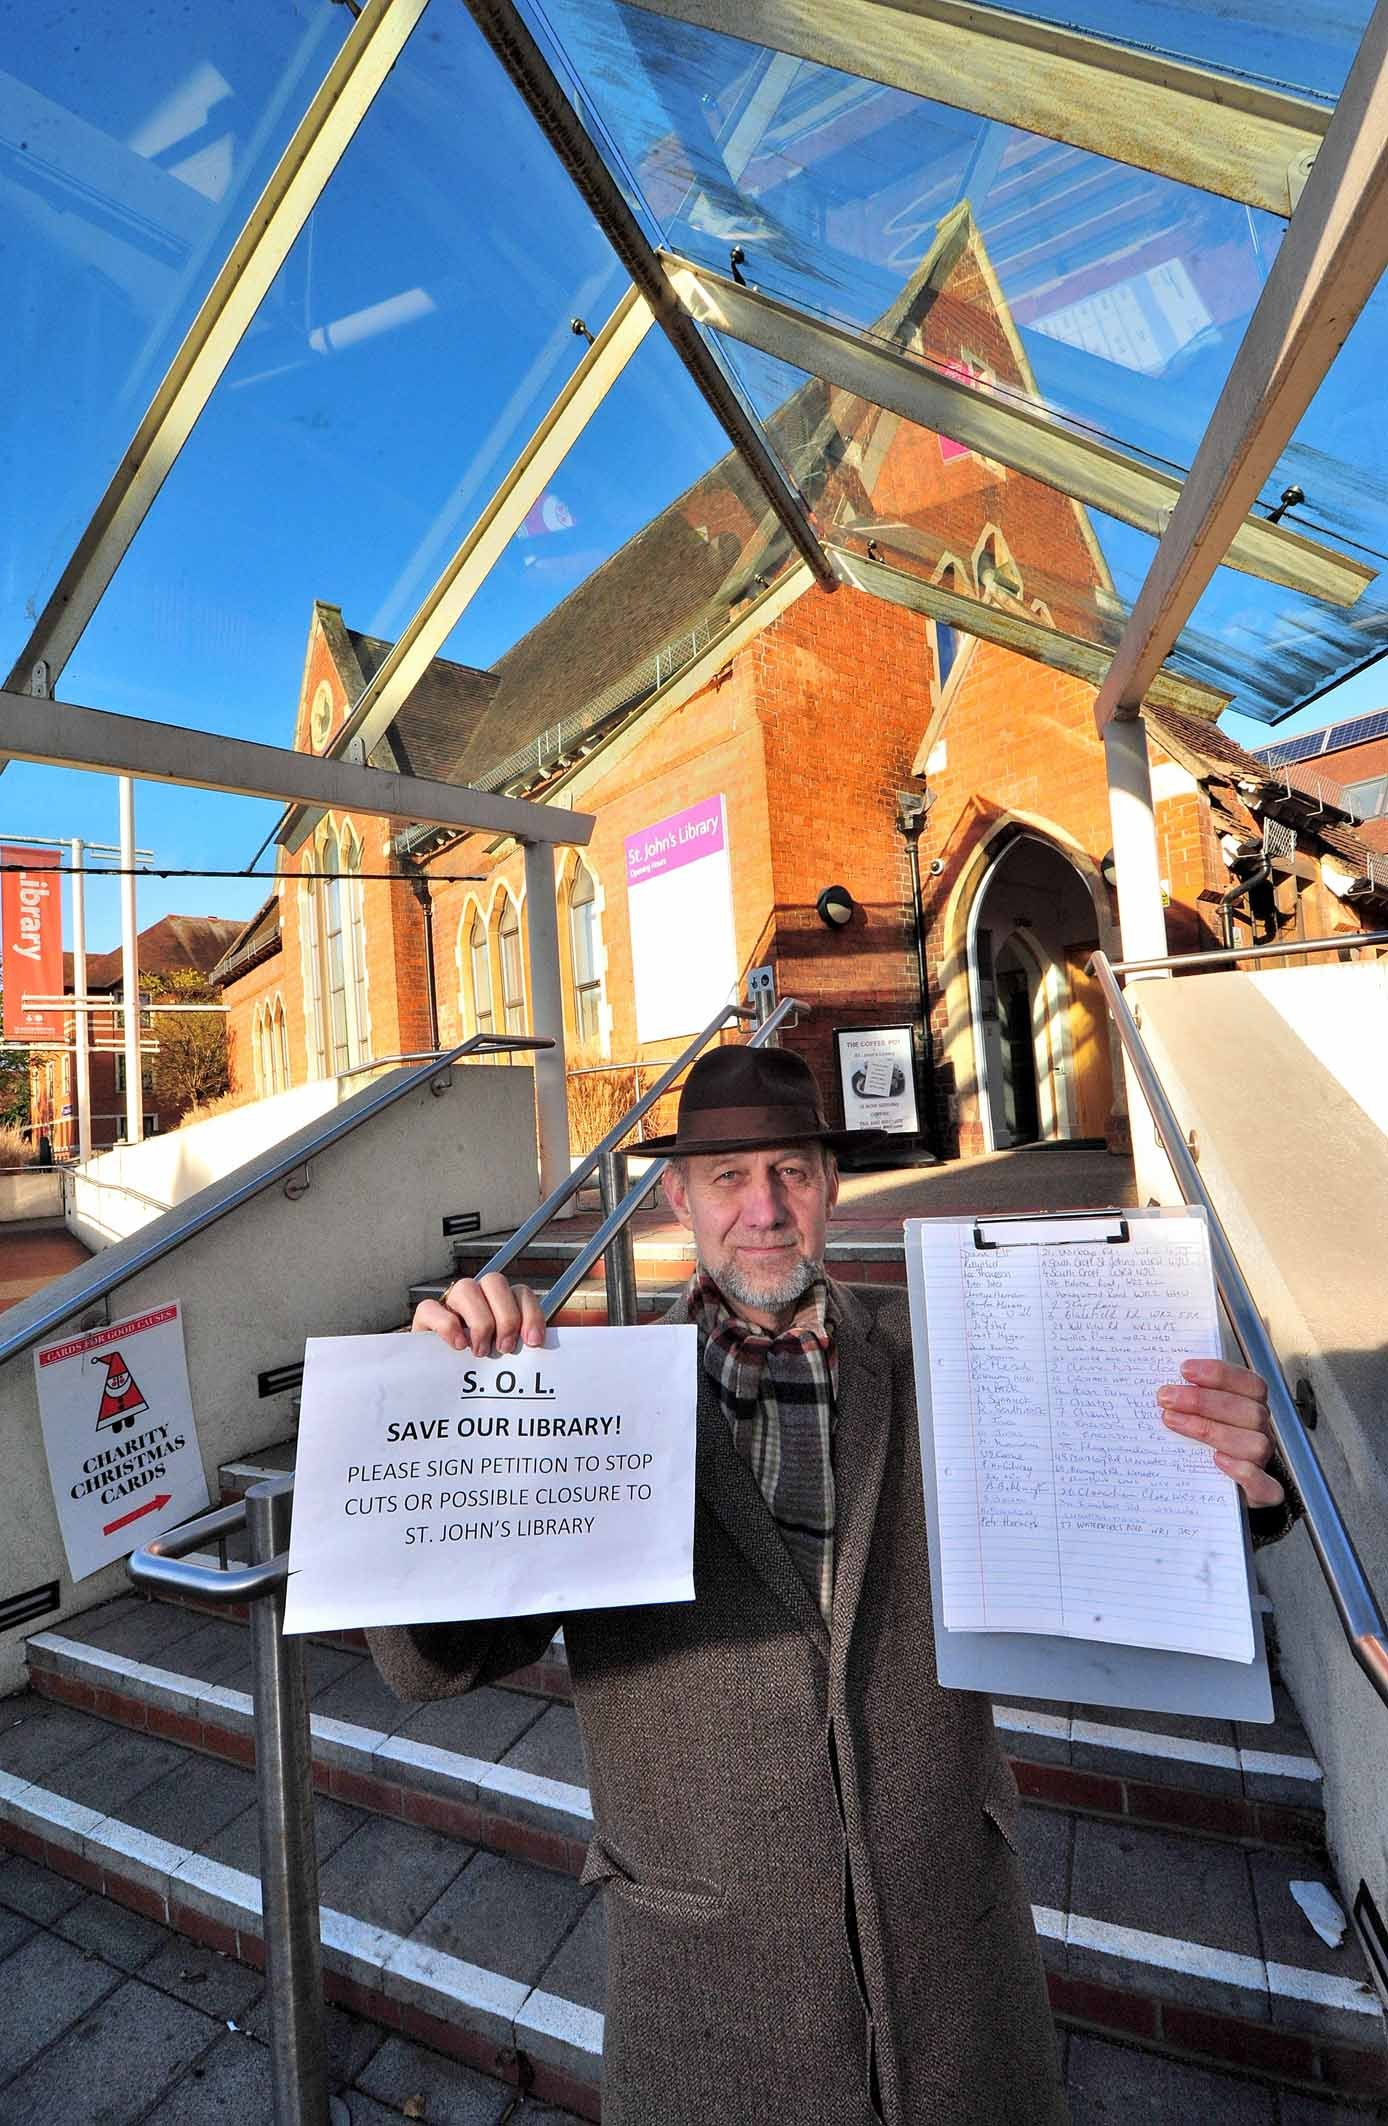 Christopher Gallantree-Smith, who has started a petition, opposing the closure of the library in St John's. Pic Jonathan Barry 19.11.18.